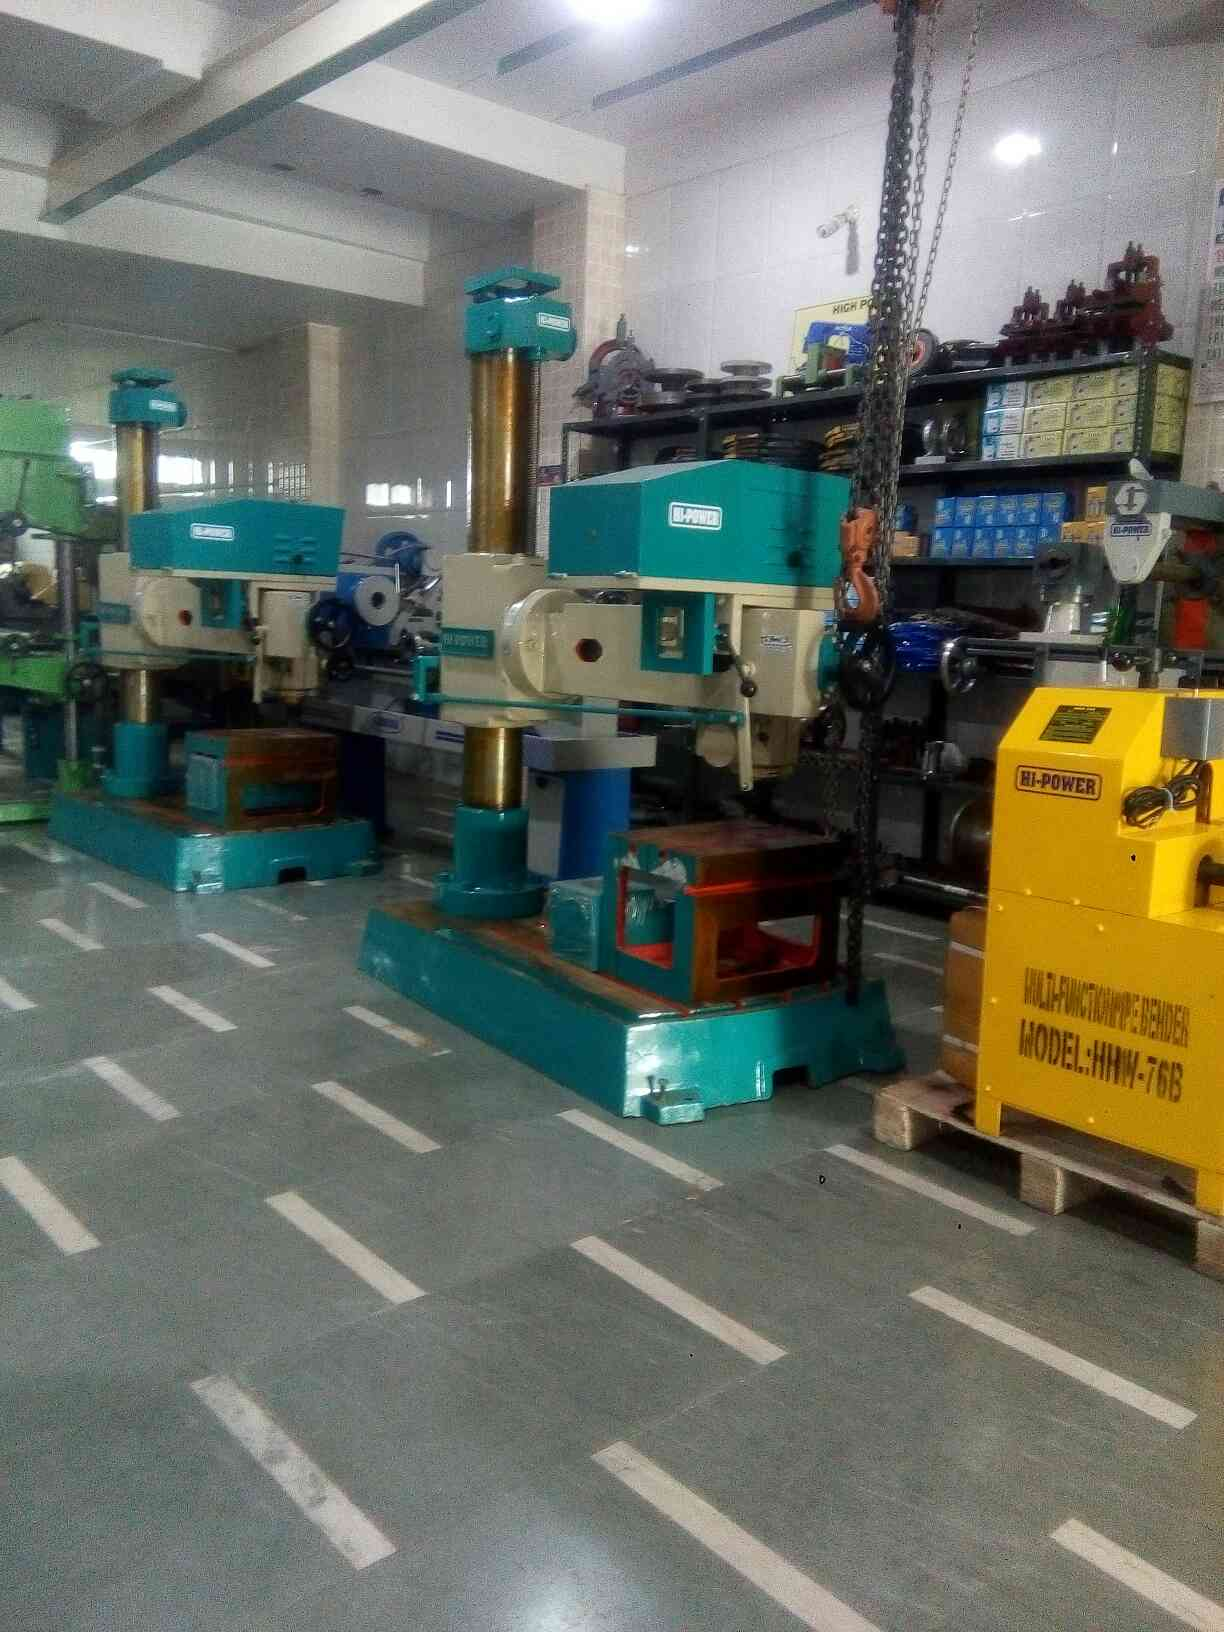 we ate manufacturers of Lathe machine, Drill machine and other SPM in Rajkot